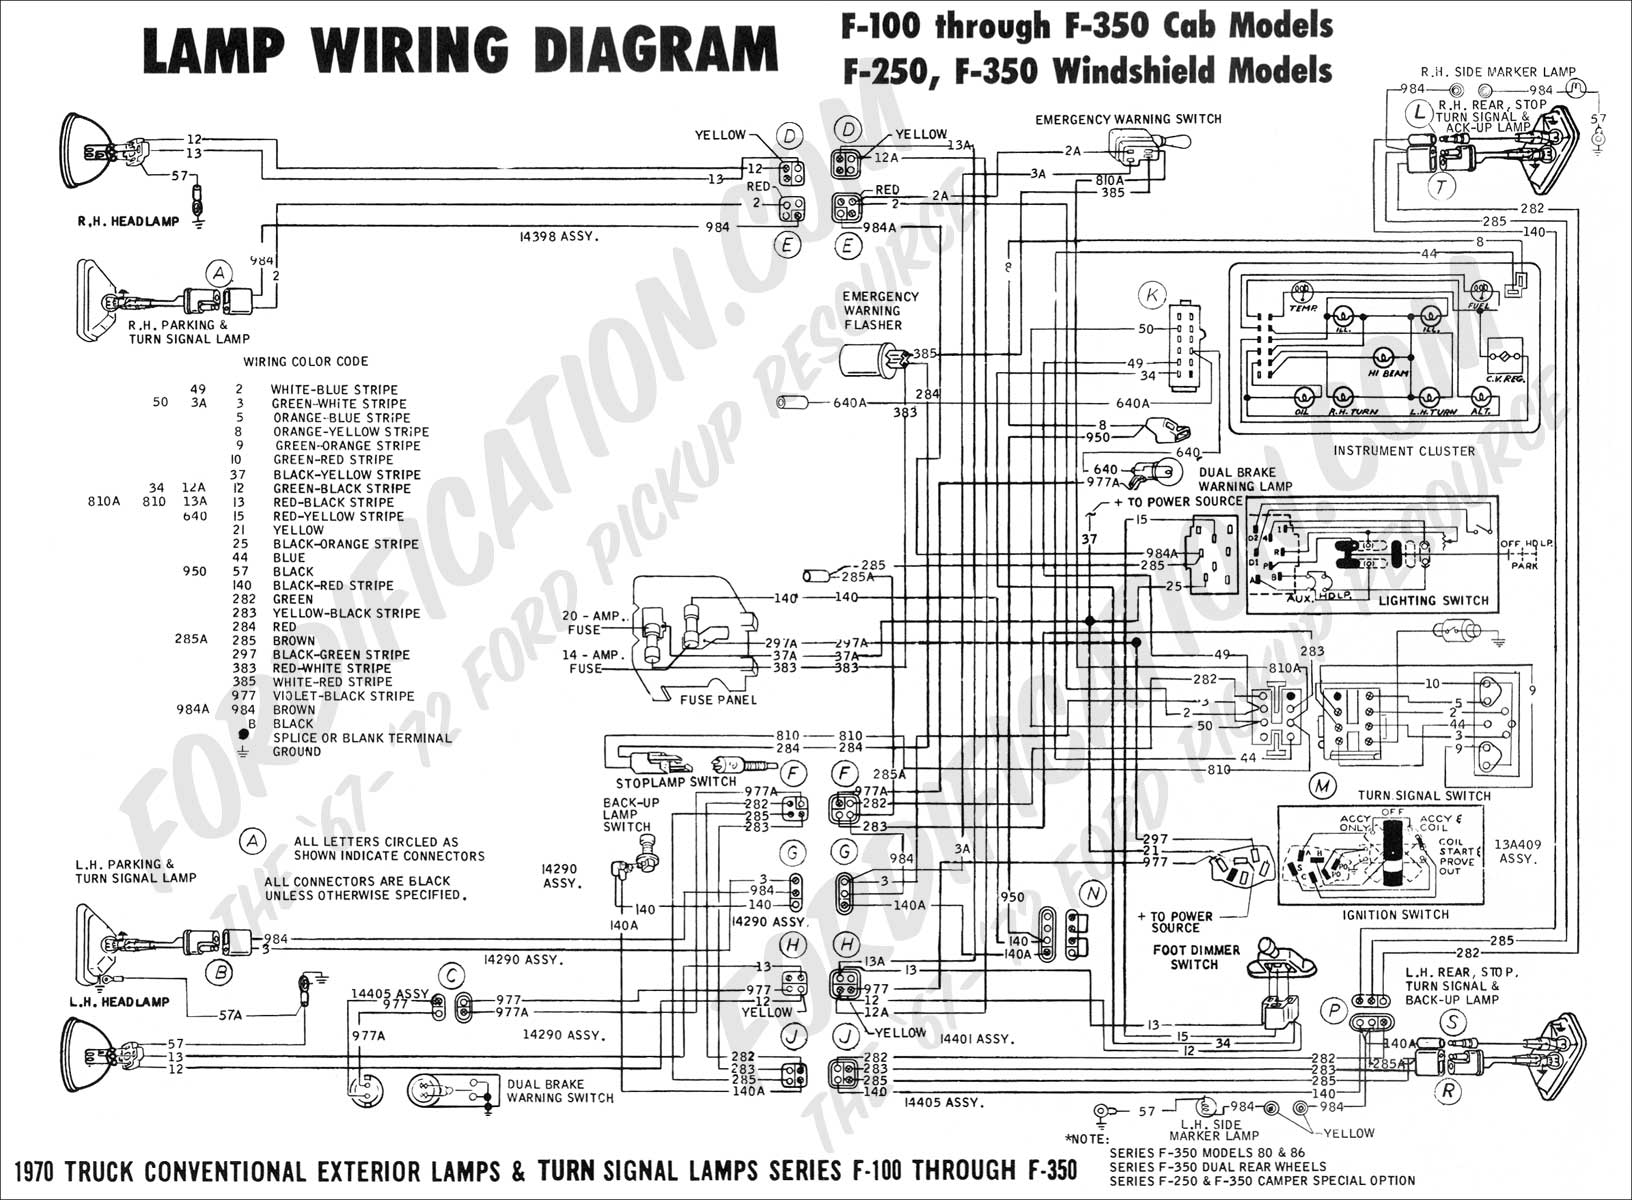 f350 wiring diagram f350 wiring diagrams 1970 f 100 f250 lamp wiring 01 the wiring diagram for ford